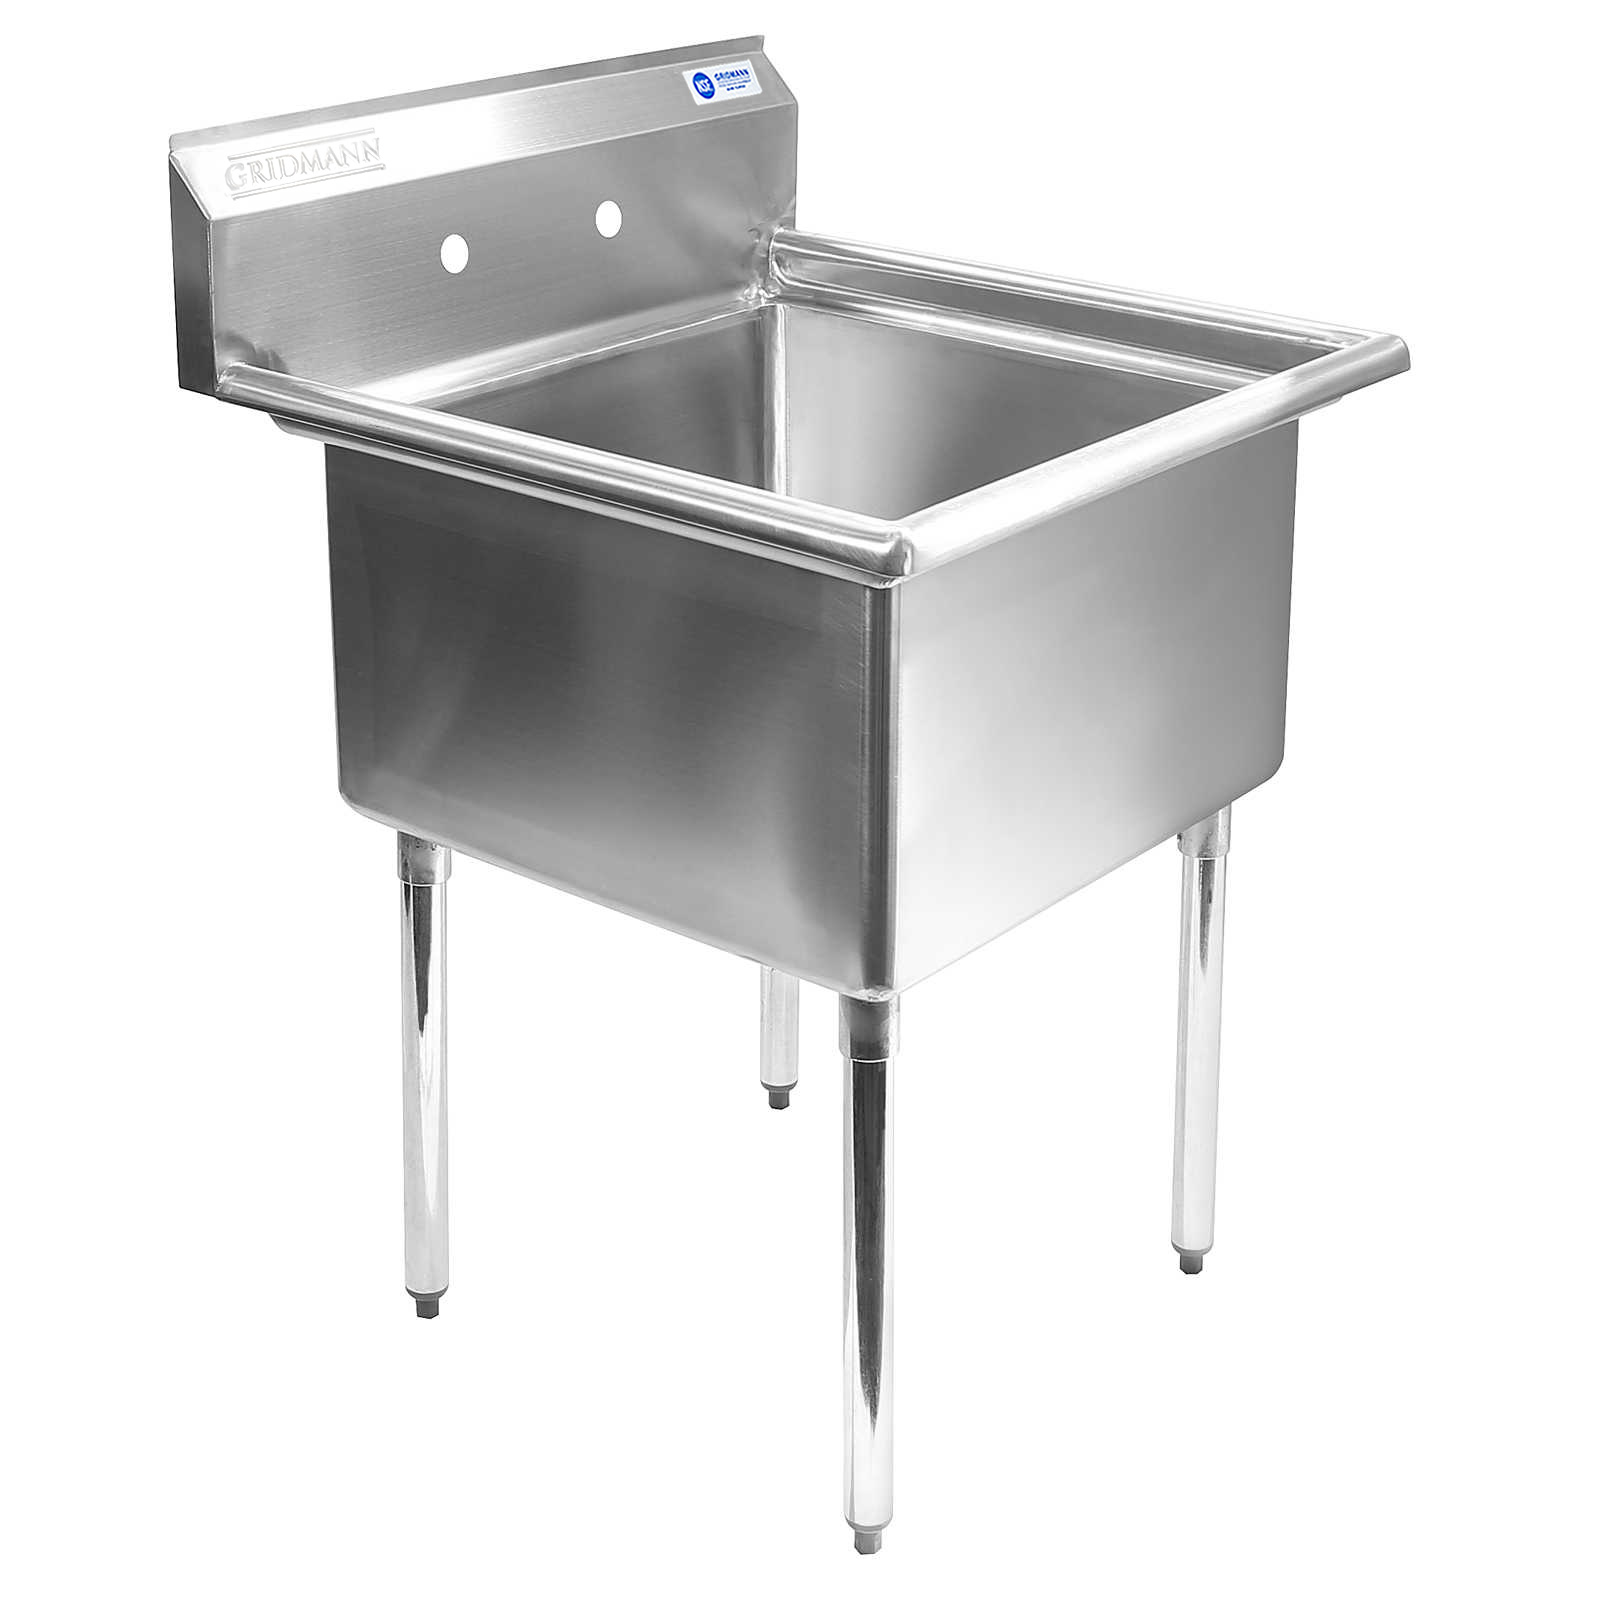 Gridmann 1 Compartment NSF Stainless Steel Commercial Kitchen Prep U0026 Utility  Sink   30 In.